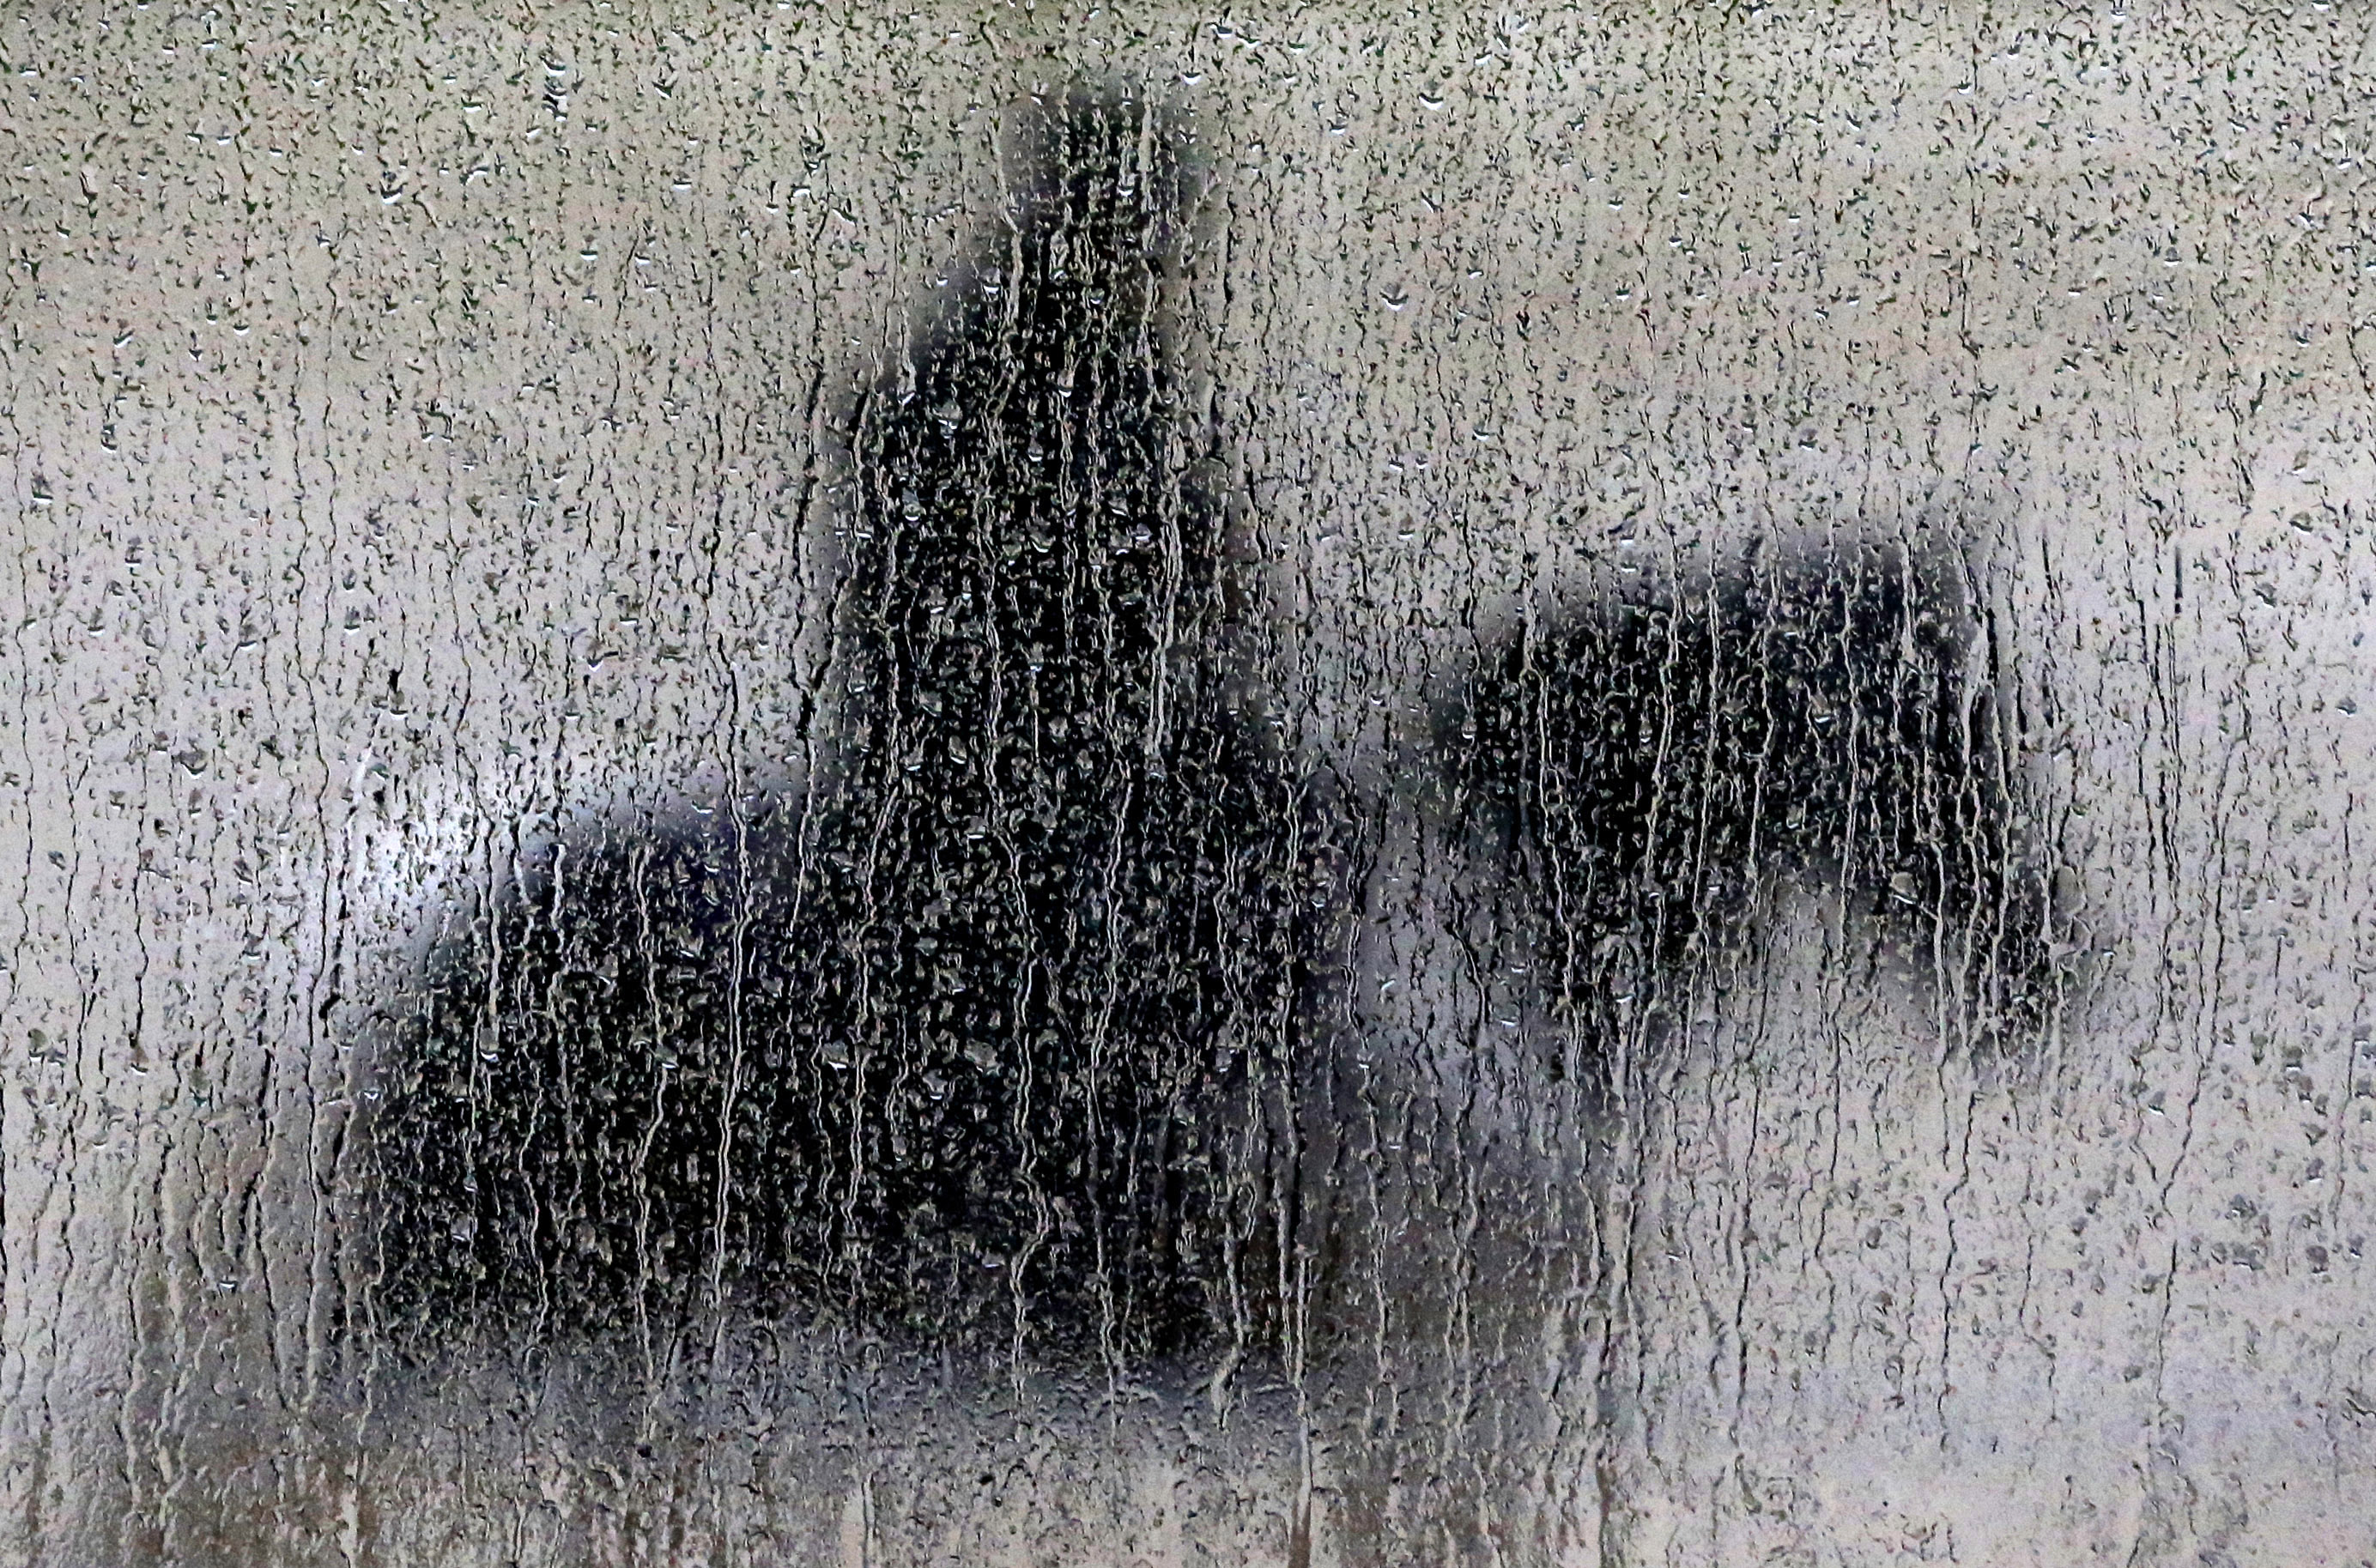 May 16, 2014. Rain runs down a pane of glass as a woman aboard a pony waits to guide a horse off the track during a workout session at Pimlico Race Course in Baltimore,